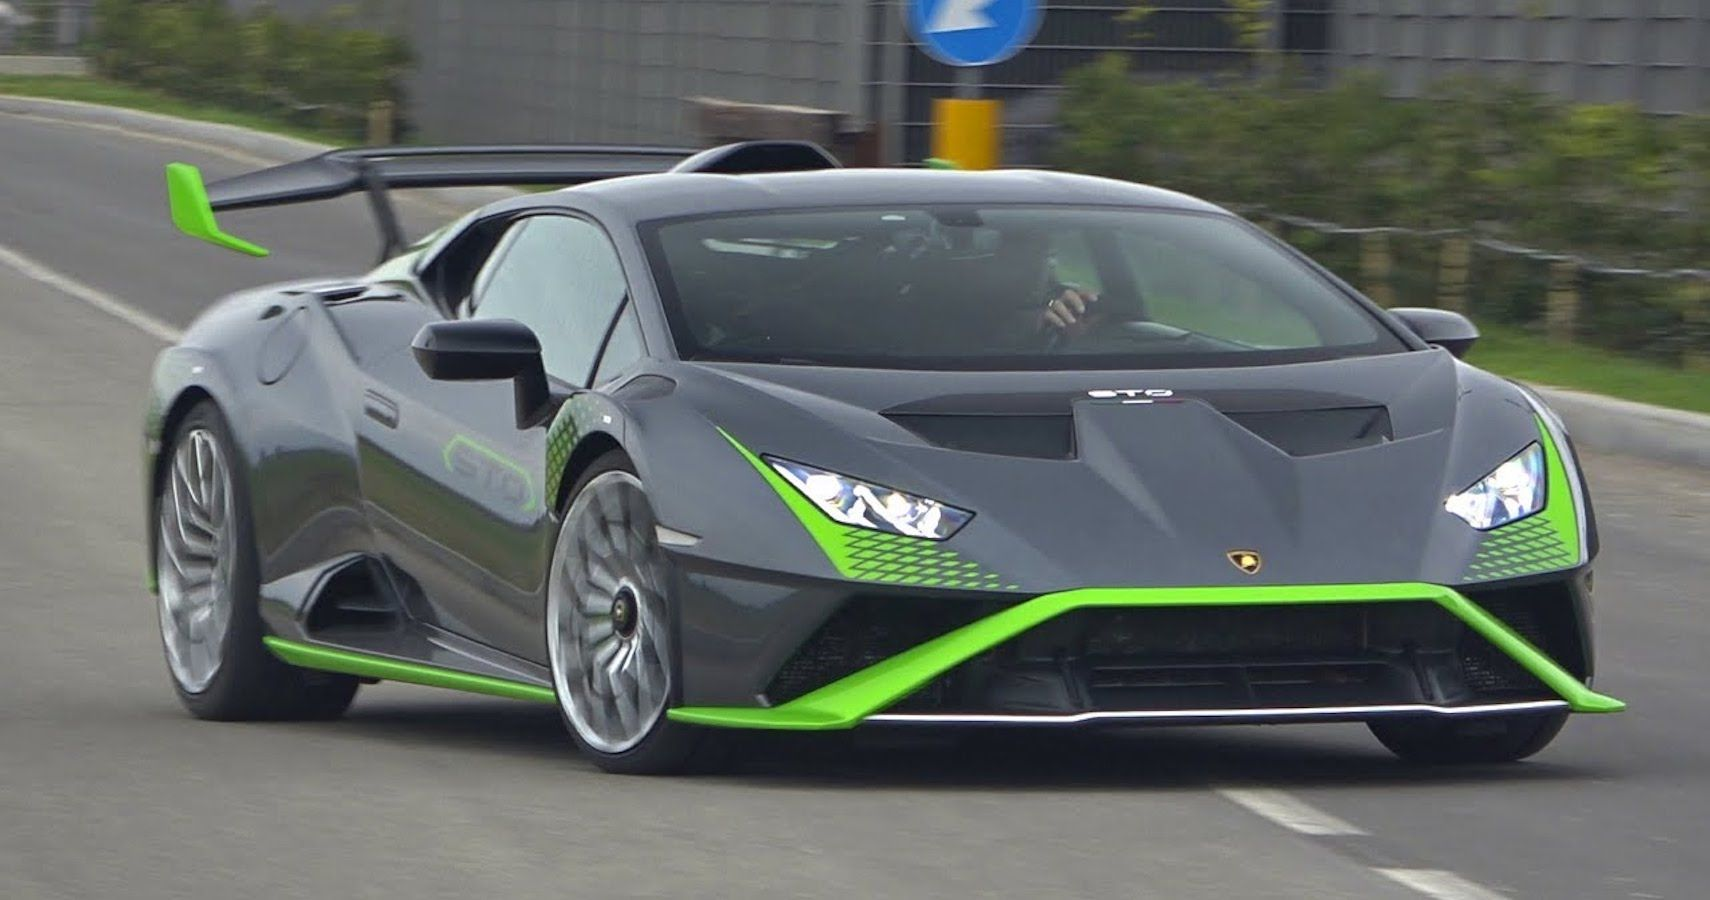 Lamborghini Huracan STO In Gray And Green Spotted Testing